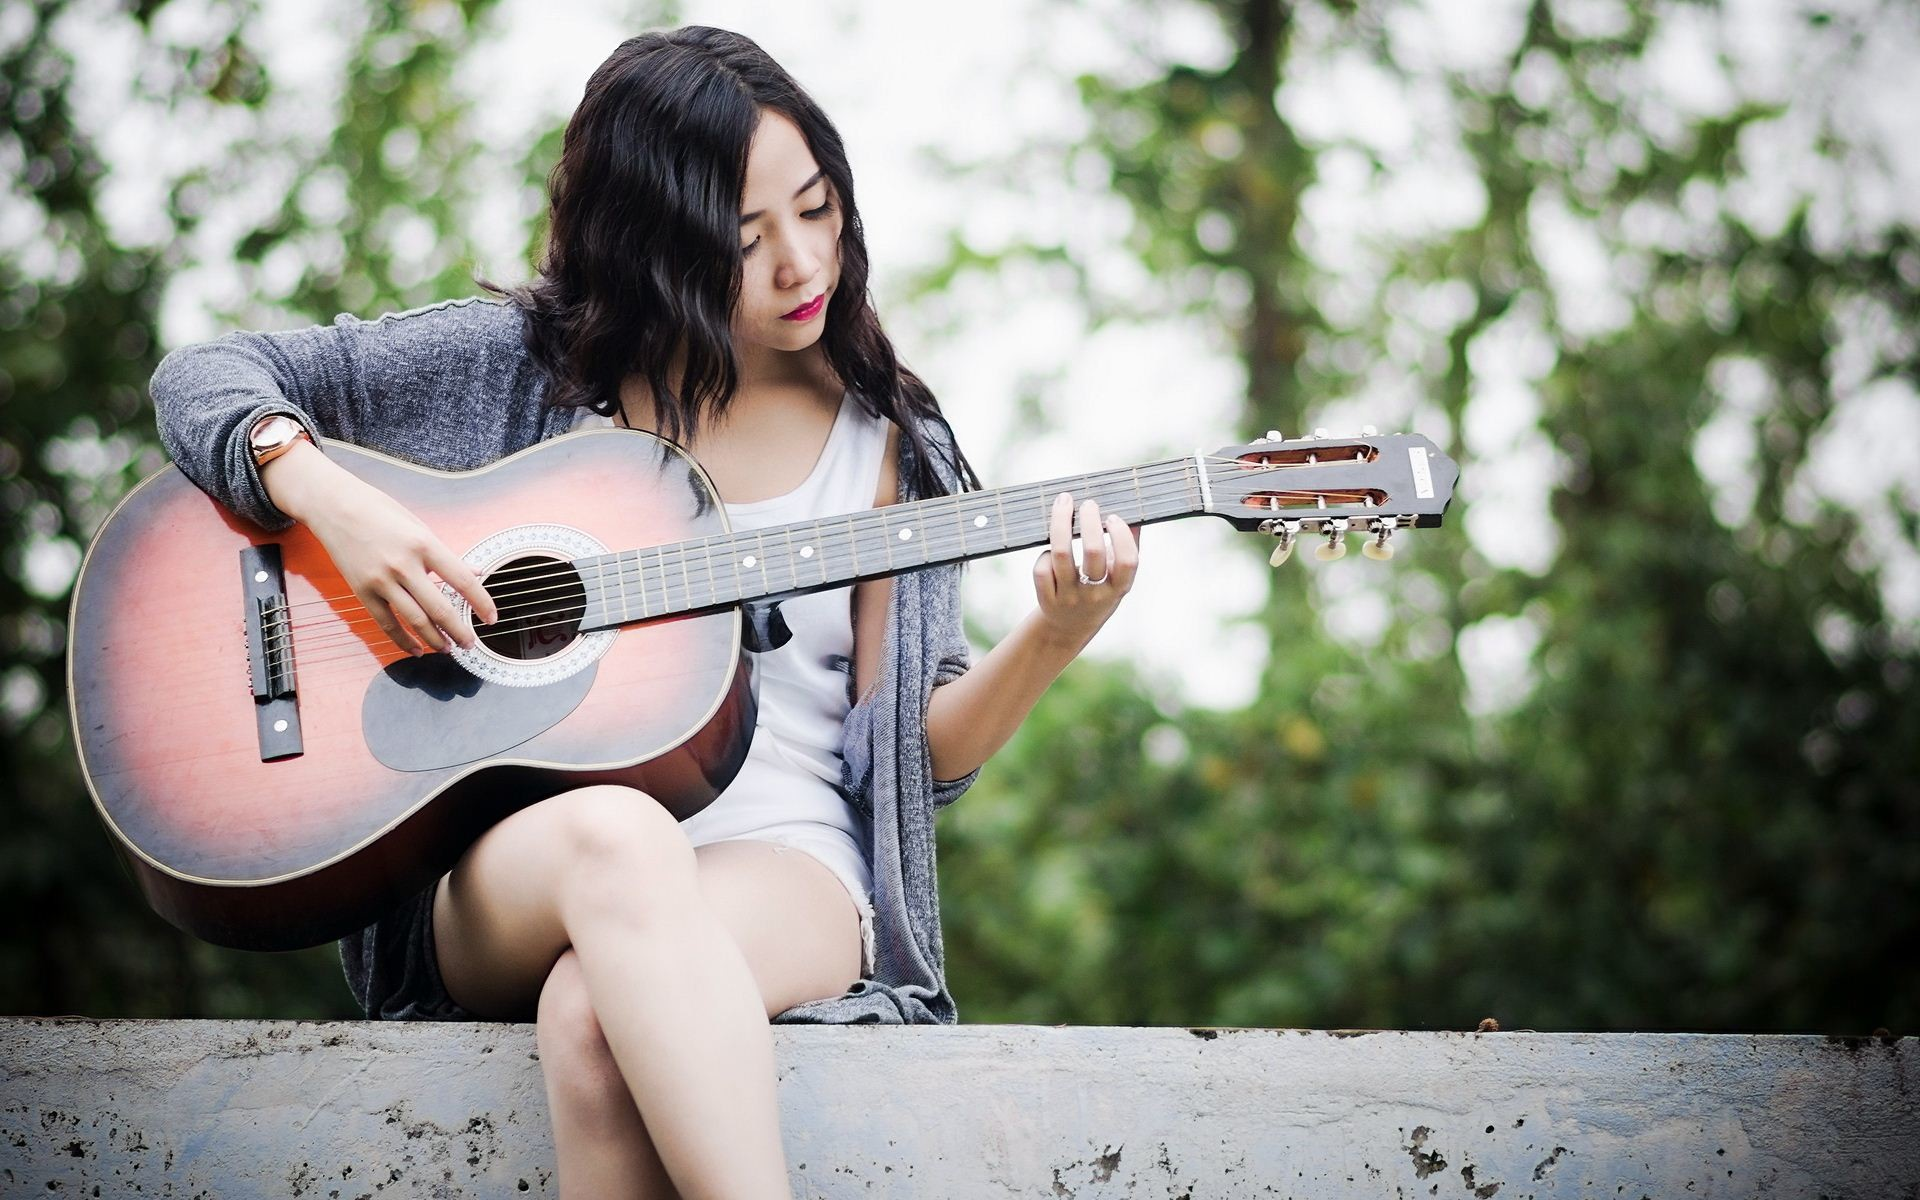 Asian Girl With Guitar , HD Wallpaper & Backgrounds